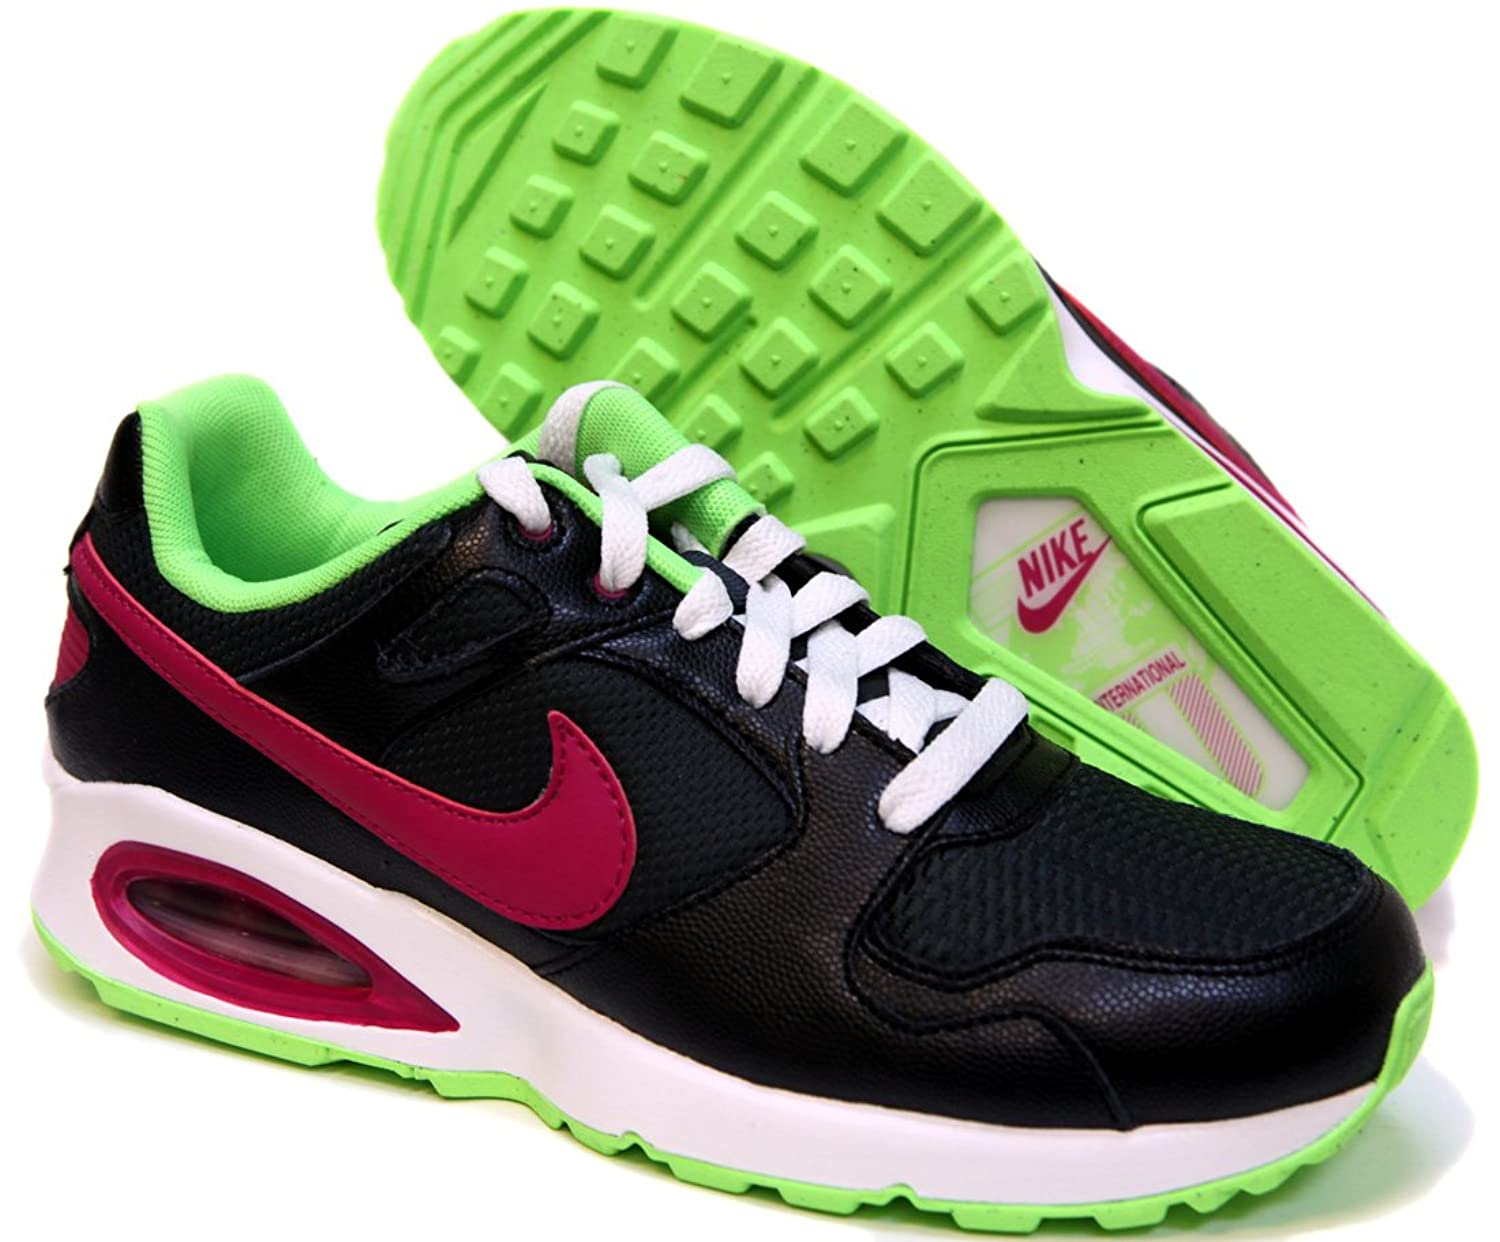 nike air max coliseum childrens trainers uk